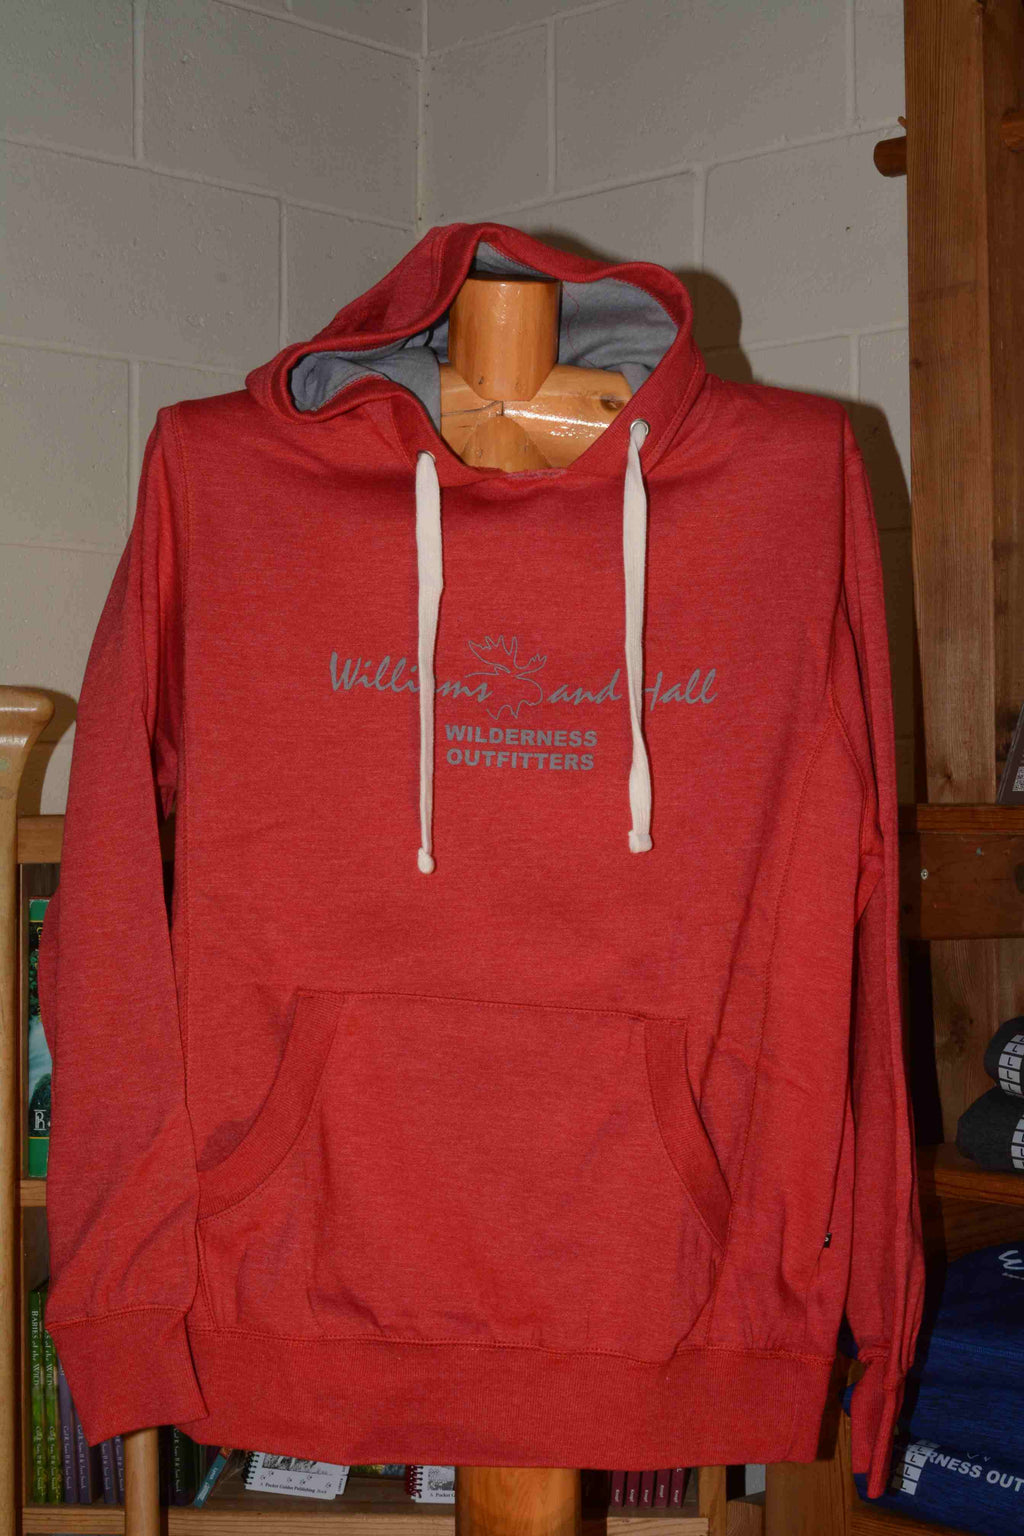 Red Sweatshirt featuring Williams and Hall Outfitters logo